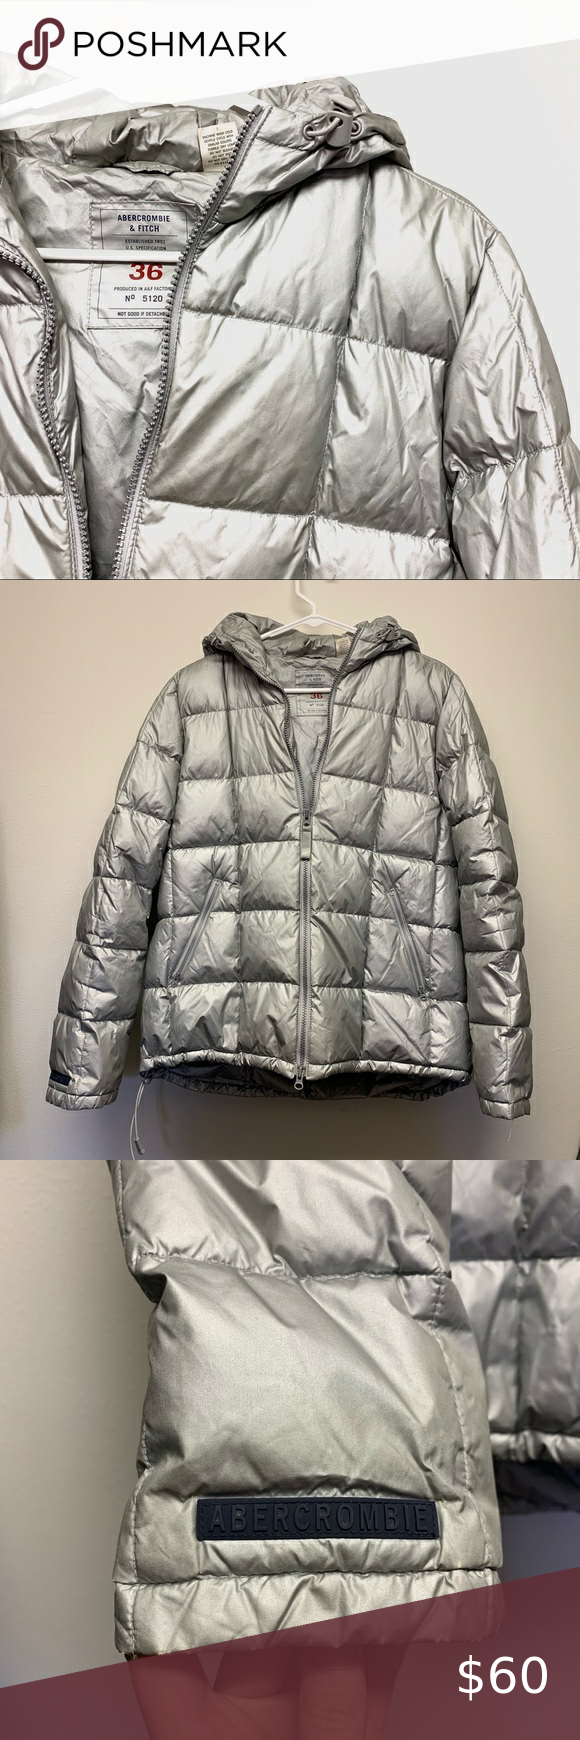 A F Metallic Silver Goose Down Puffer Jacket Silver Puffer Jacket Puffer Jackets Abercrombie And Fitch Jackets [ 1740 x 580 Pixel ]